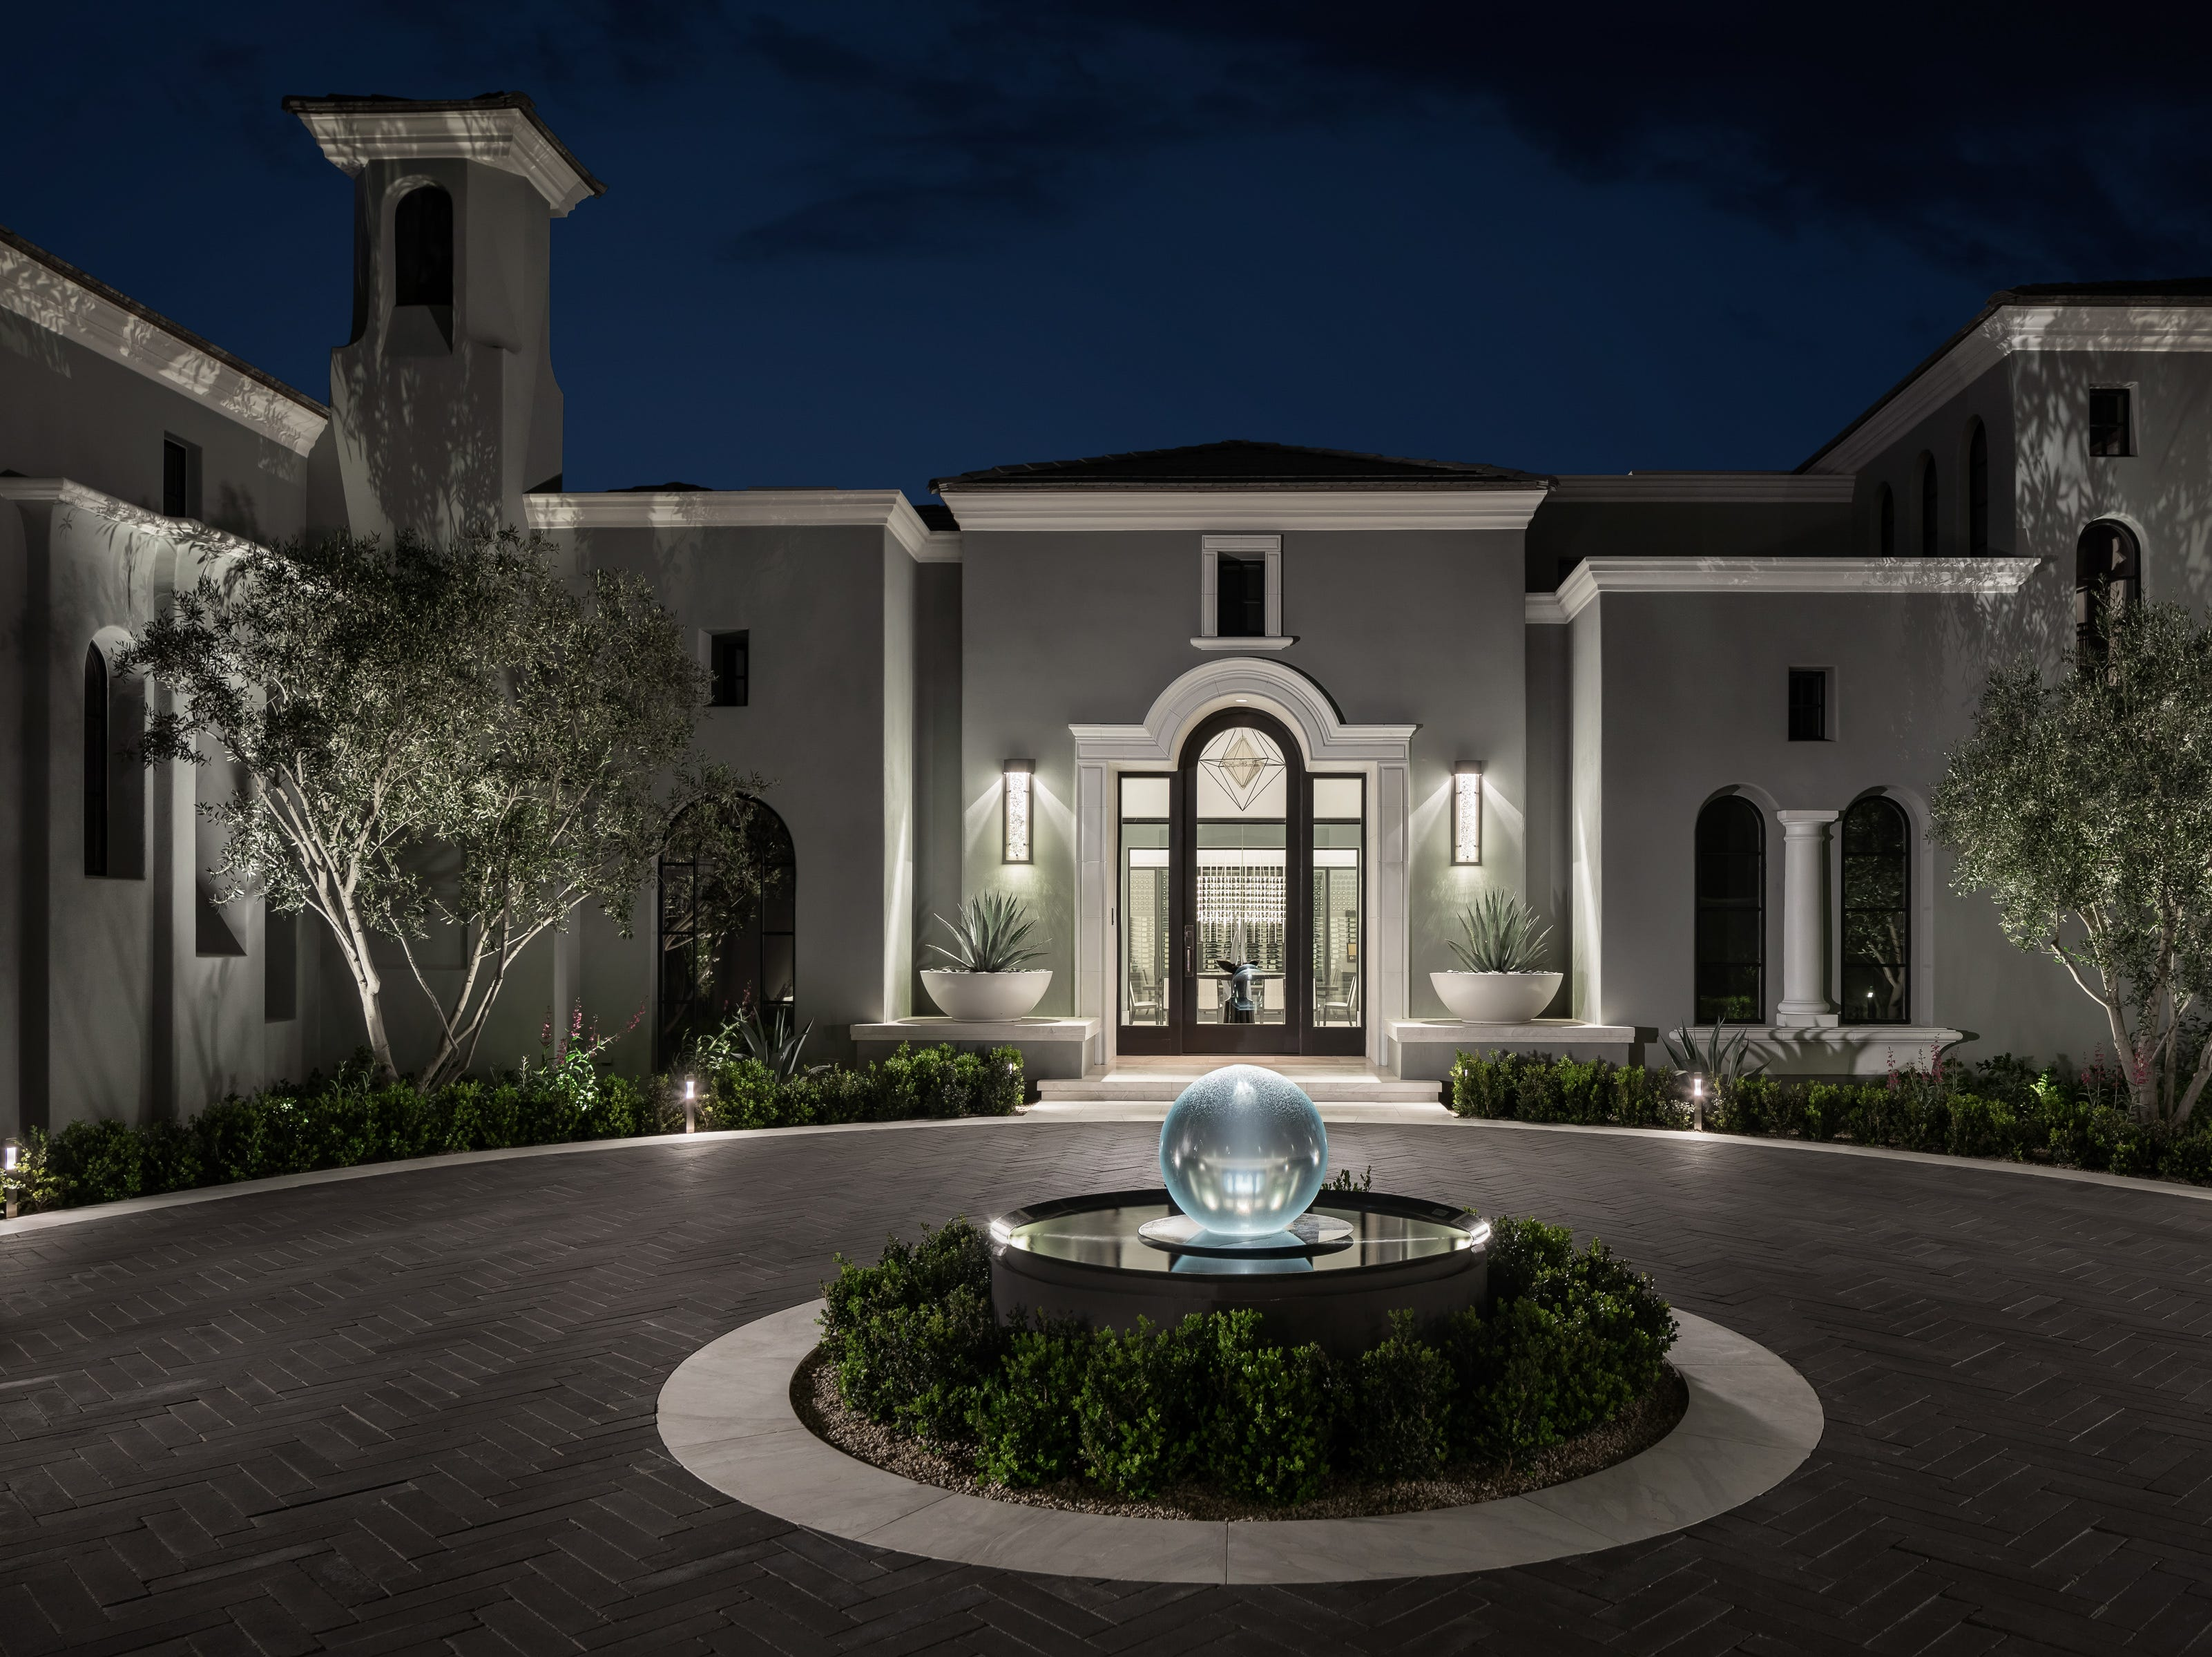 The 14,350-square-foot house is on four acres in north Scottsdale.